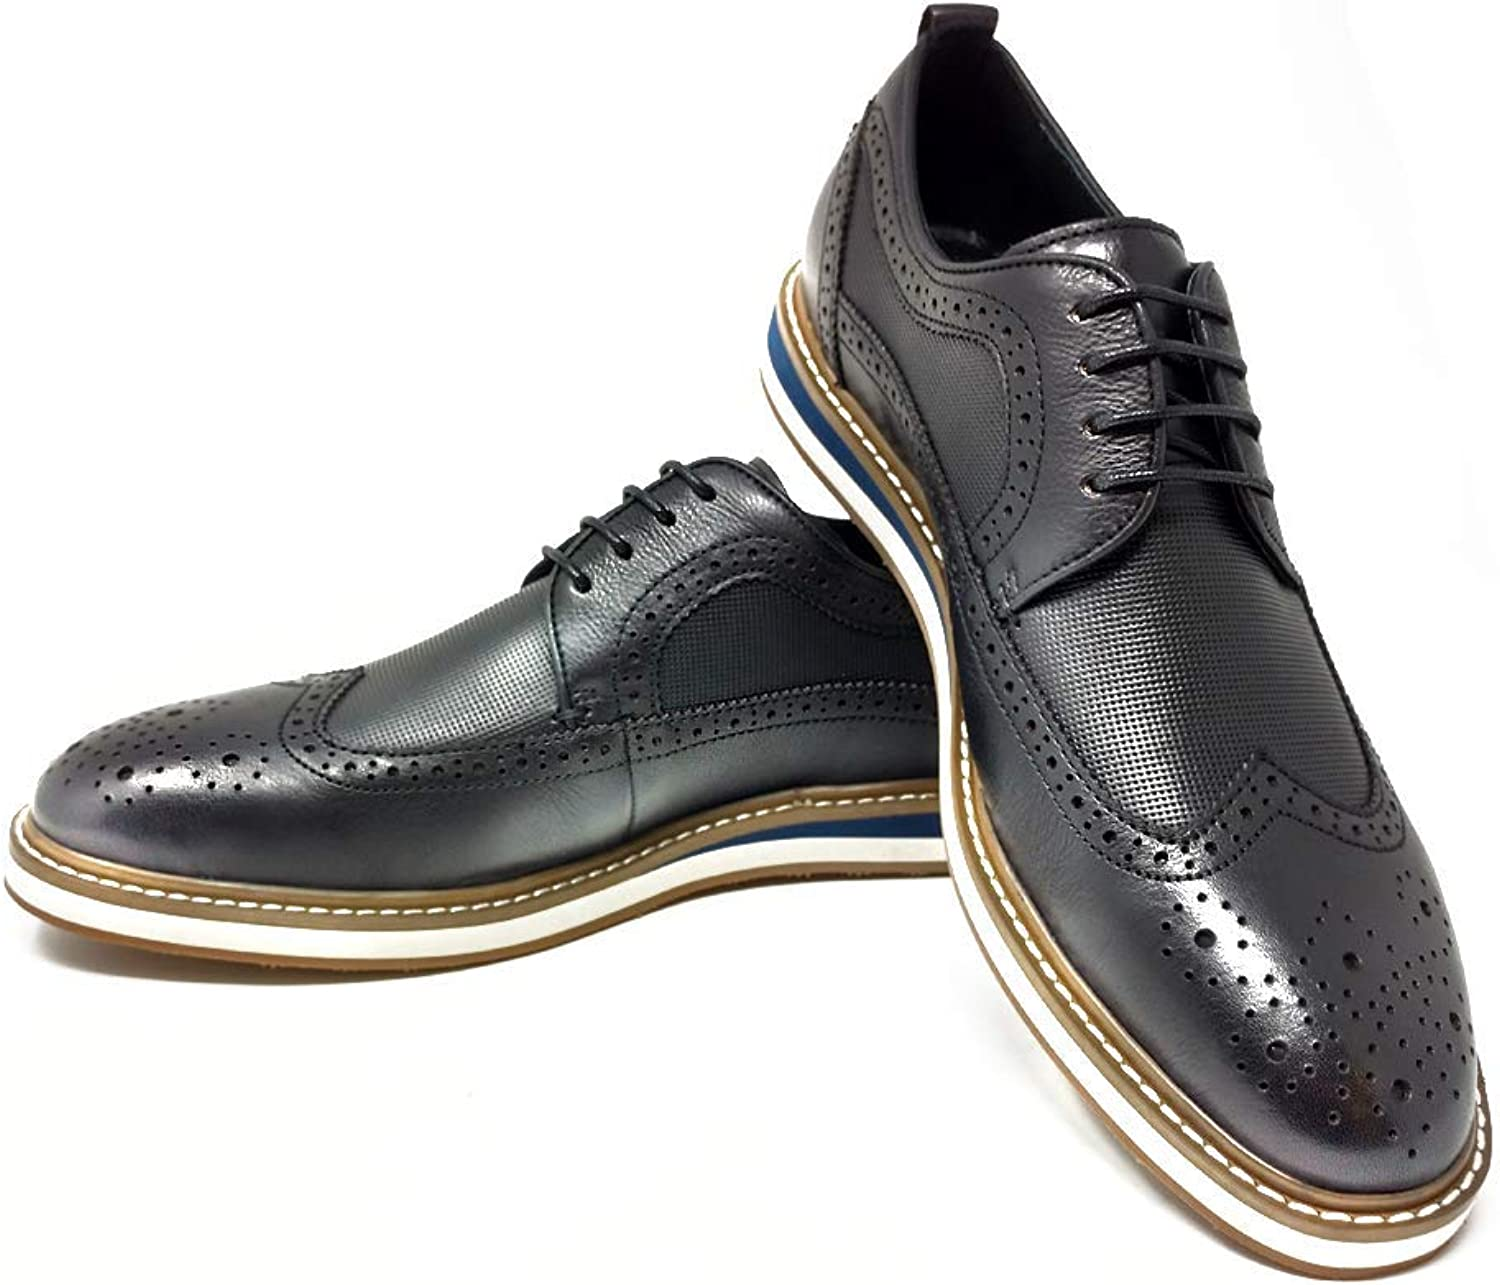 Mr. Jog Men's Premium Leather Oxford Dress shoes  Comfortable Insole   Wingtip   Lace Up   Rubber Sole